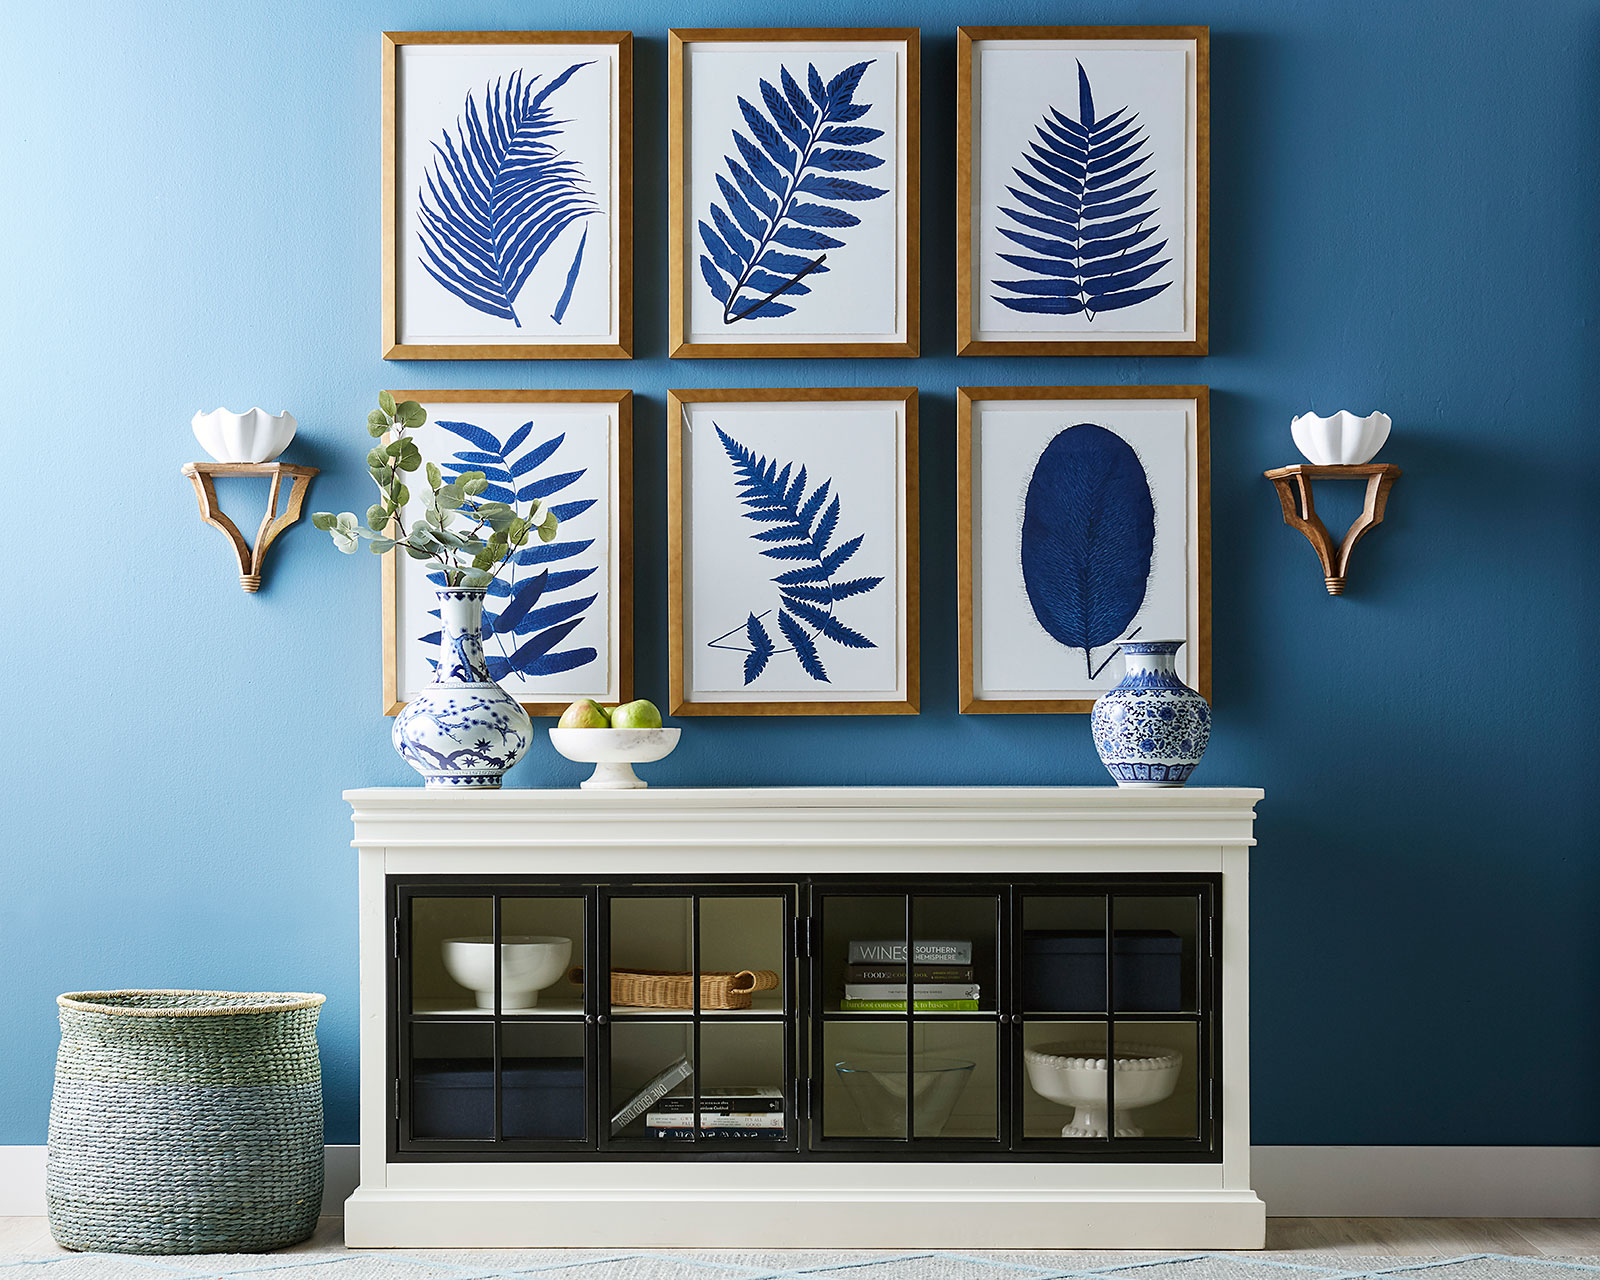 Hanging Wall Art Complete Guide | How To Decorate intended for Multi Plates Wall Decor (Image 7 of 30)